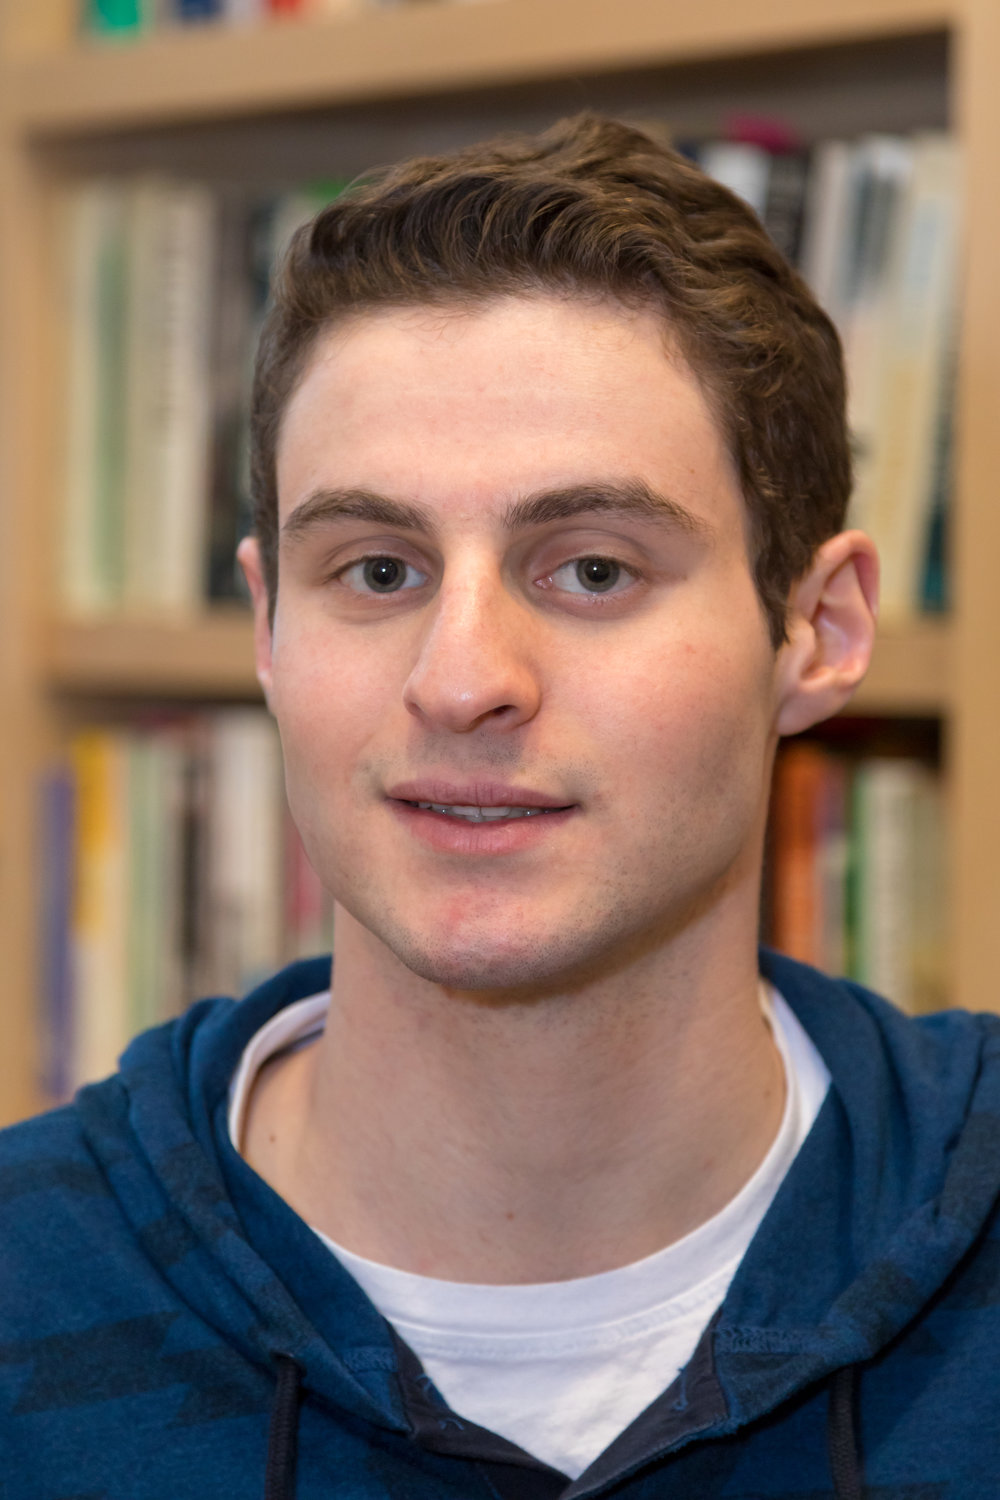 Michael Nachman - Michael is an undergraduate student at Dartmouth College in the Class of 2021. Michael is a prospective government major with interests in government, economics, law and public policy. His notable accomplishment as a researcher is recognition as a Regeneron Science Talent Search Top 300 Scholar for his work studying US political primary election trends. He has also earned recognition at the Long Island Science and Engineering Fair, New York State Science and Engineering Fair and the New York State Archives Research Competition for studies related to political science and economics. Michael's team was also the New York State Champion of the 2017 National Economics Challenge. On campus, Michael works as an Associate Editor for the Dartmouth Law Journal, a Grader for Professor Ferwerda of the Dartmouth Government Department, and as a Research Assistant to Dr. Andrew Shaver at the Dickey Center for International Understanding.